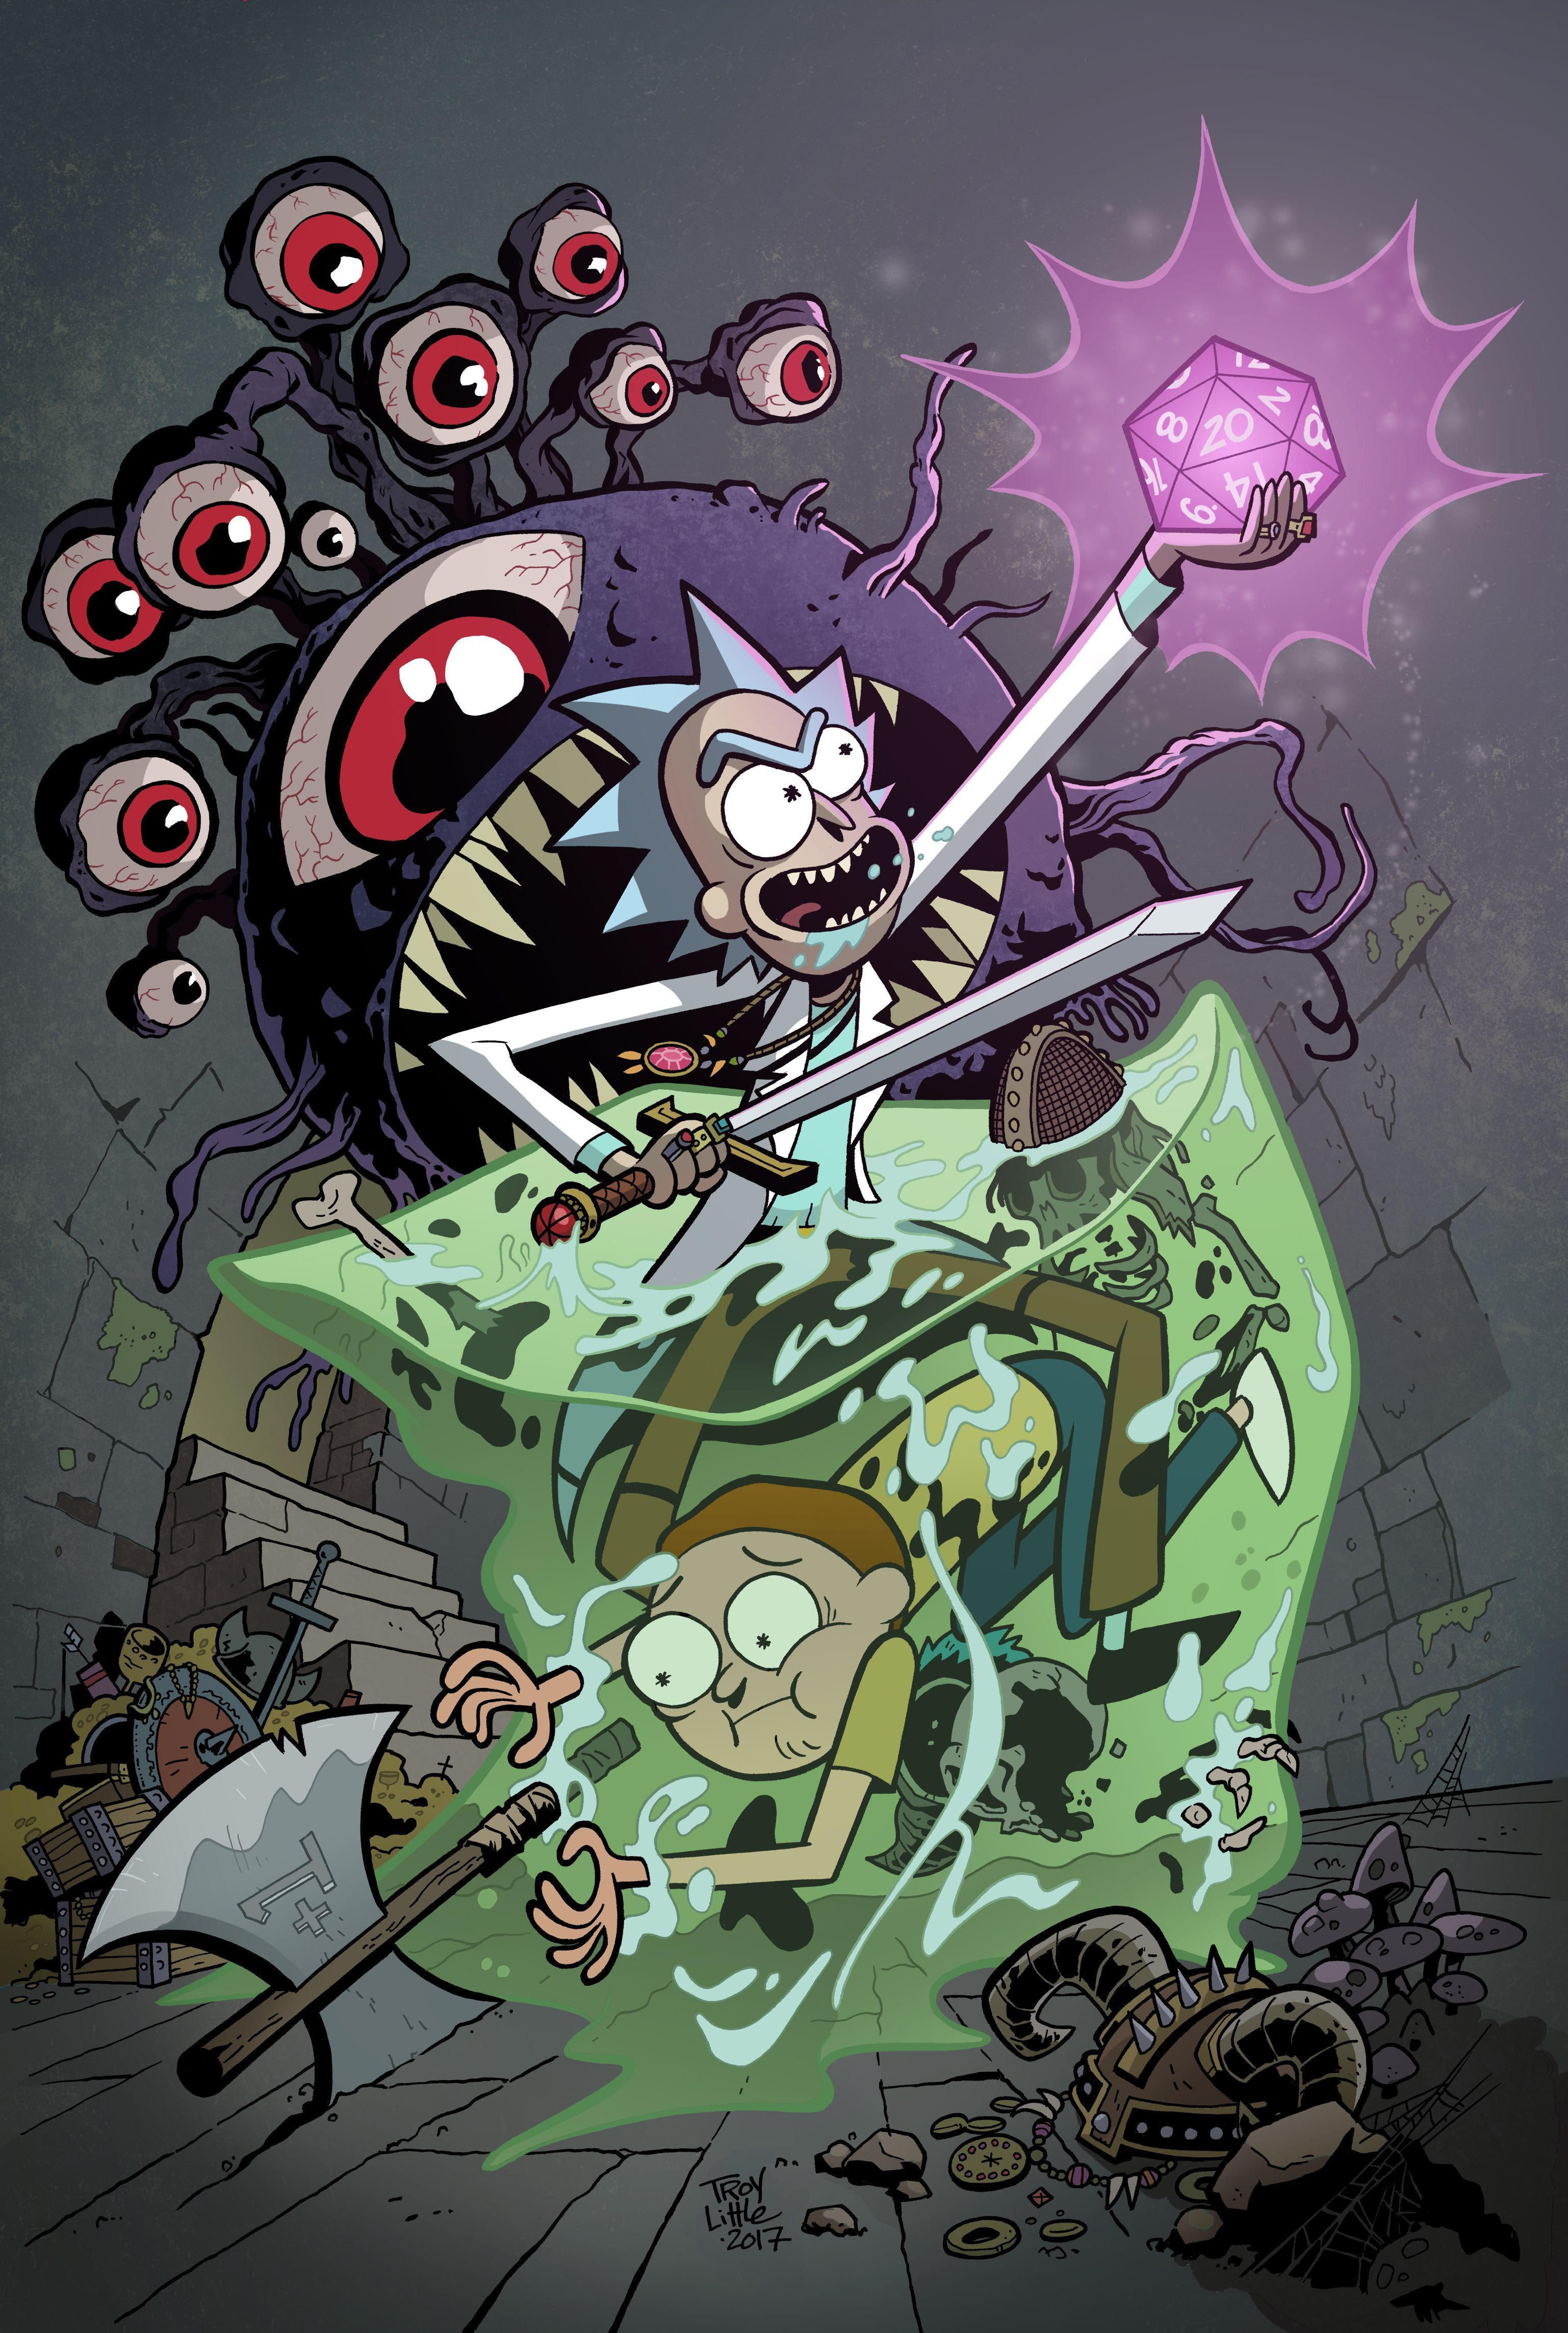 Rick and Morty Are Going on a 'Dungeons & Dragons' Adventure - VICE